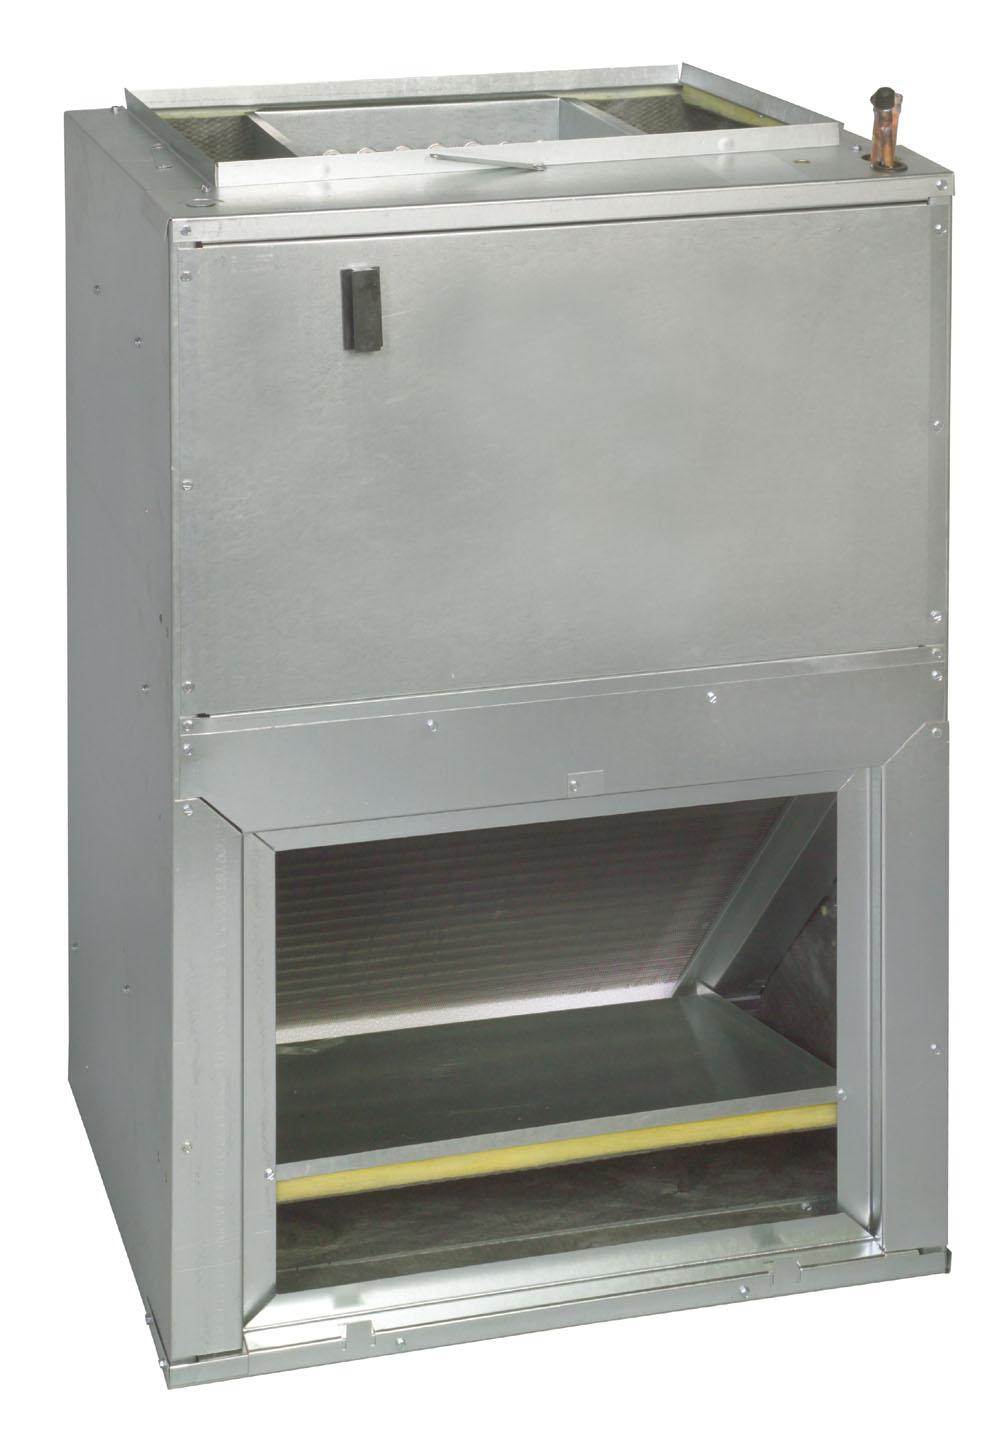 Recalled AWUF air handler unit